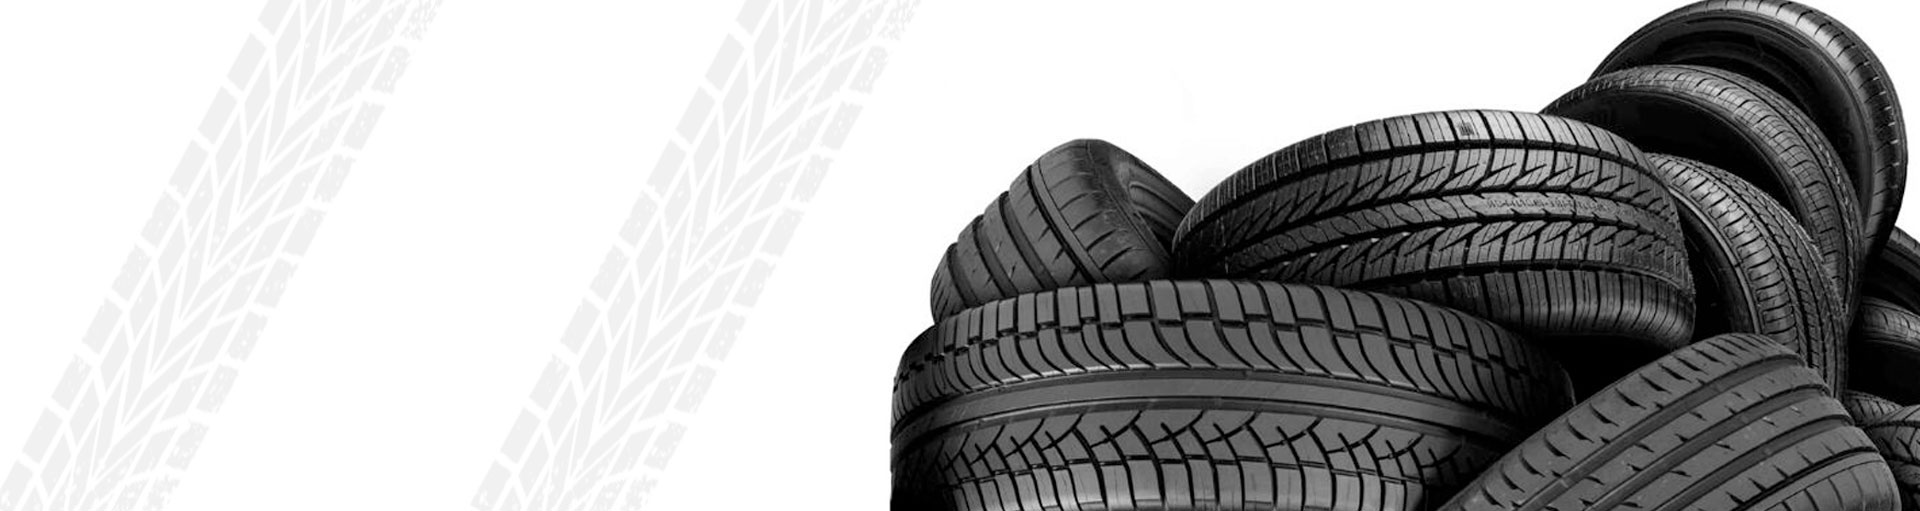 Stephen Wade Toyota Tire Specials